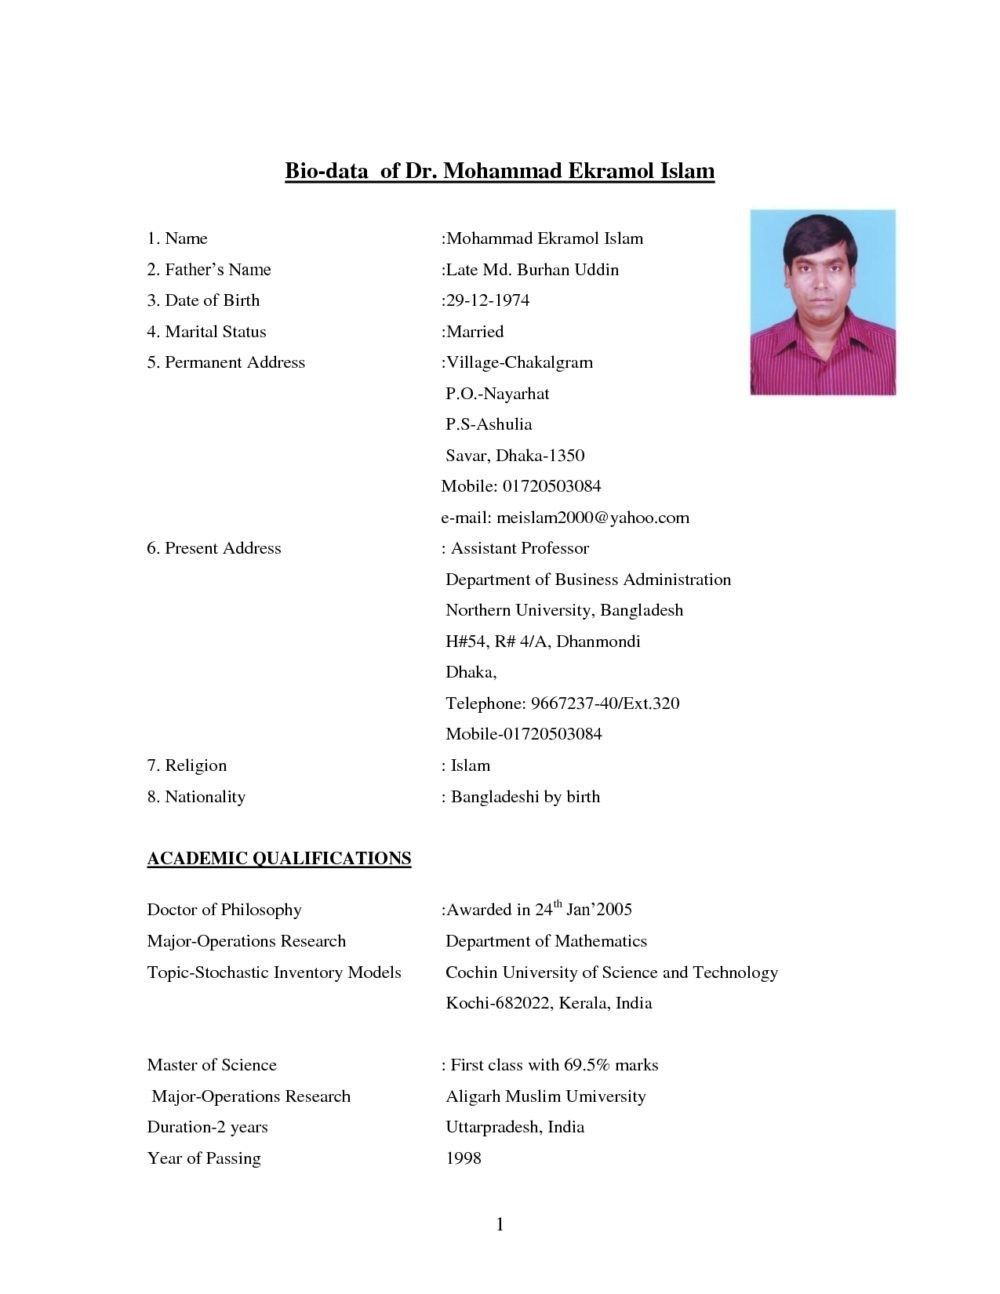 Marriage Biodata Word Format 2021 In 2021 Marriage Biodata Format Bio Data For Marriage Biodata Format Download